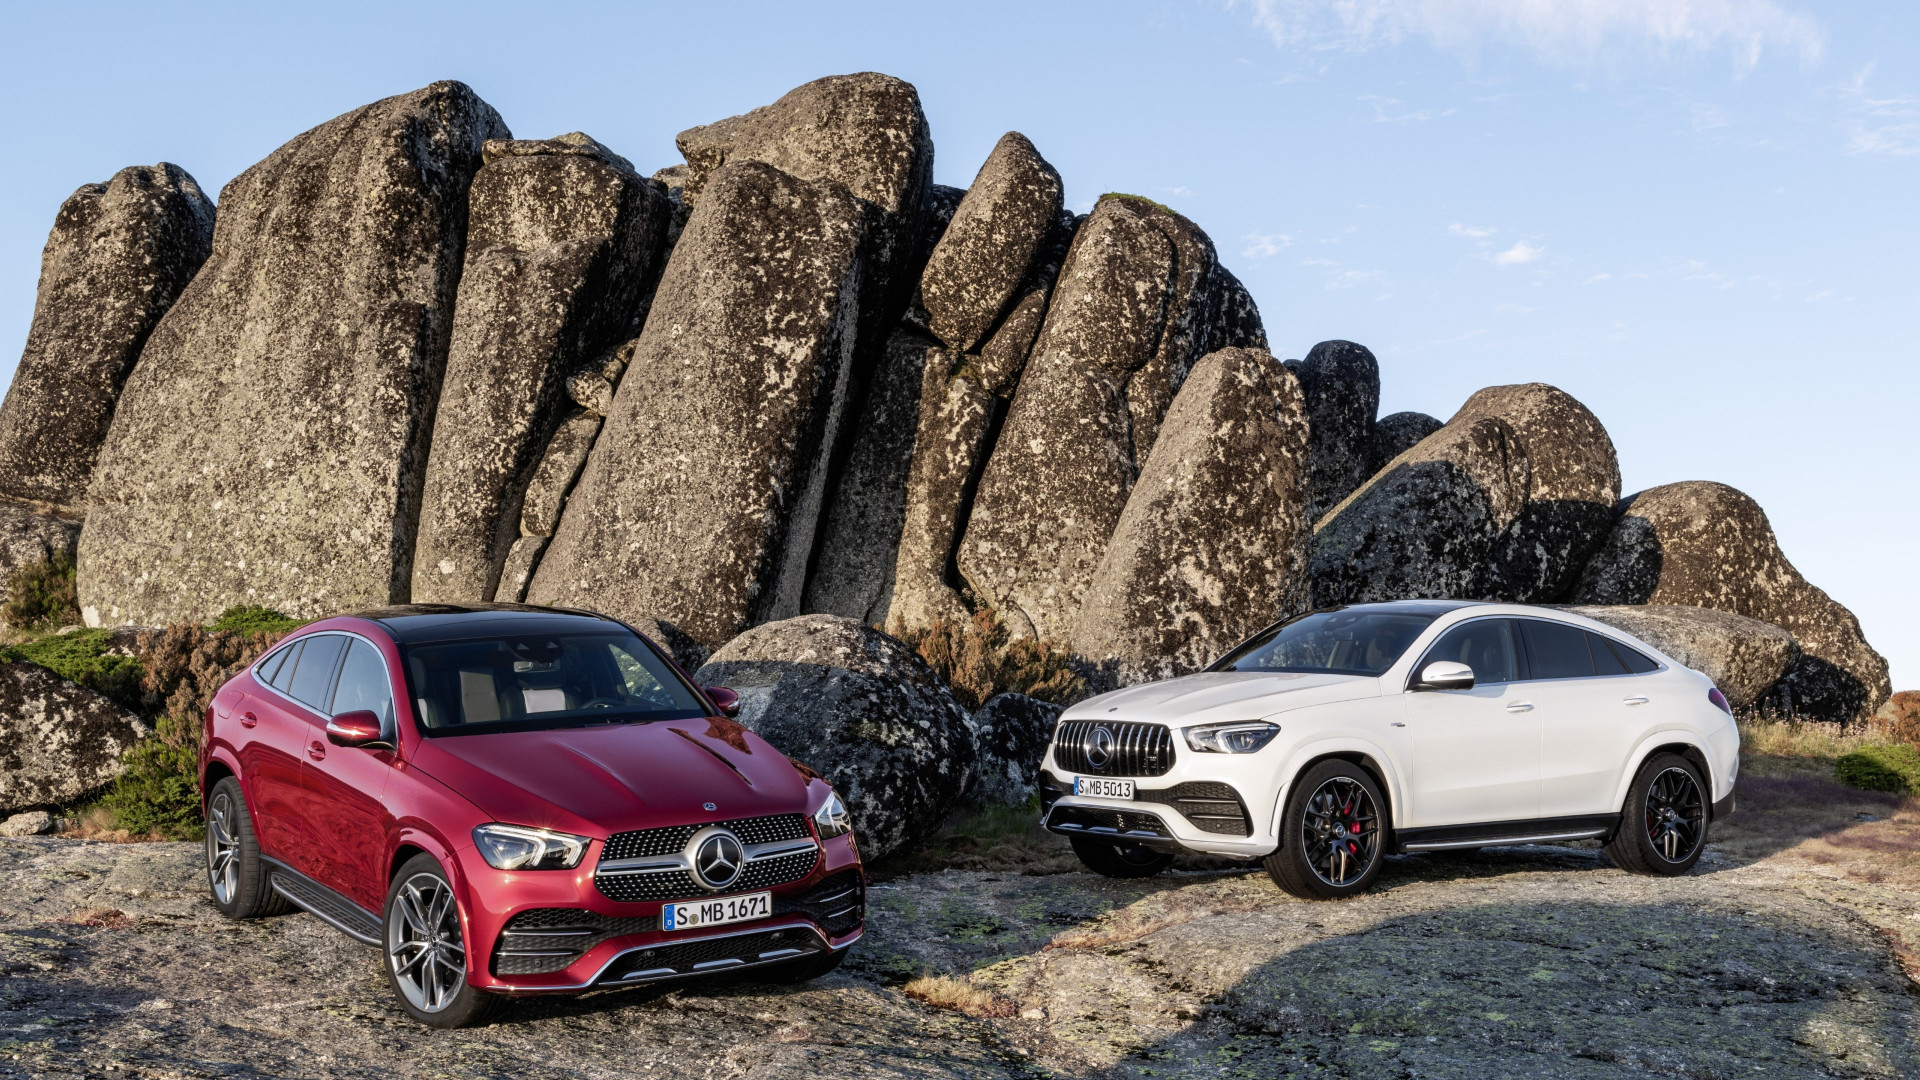 Download wallpaper: Mercedes Benz GLE AMG Coupe 1920x1080